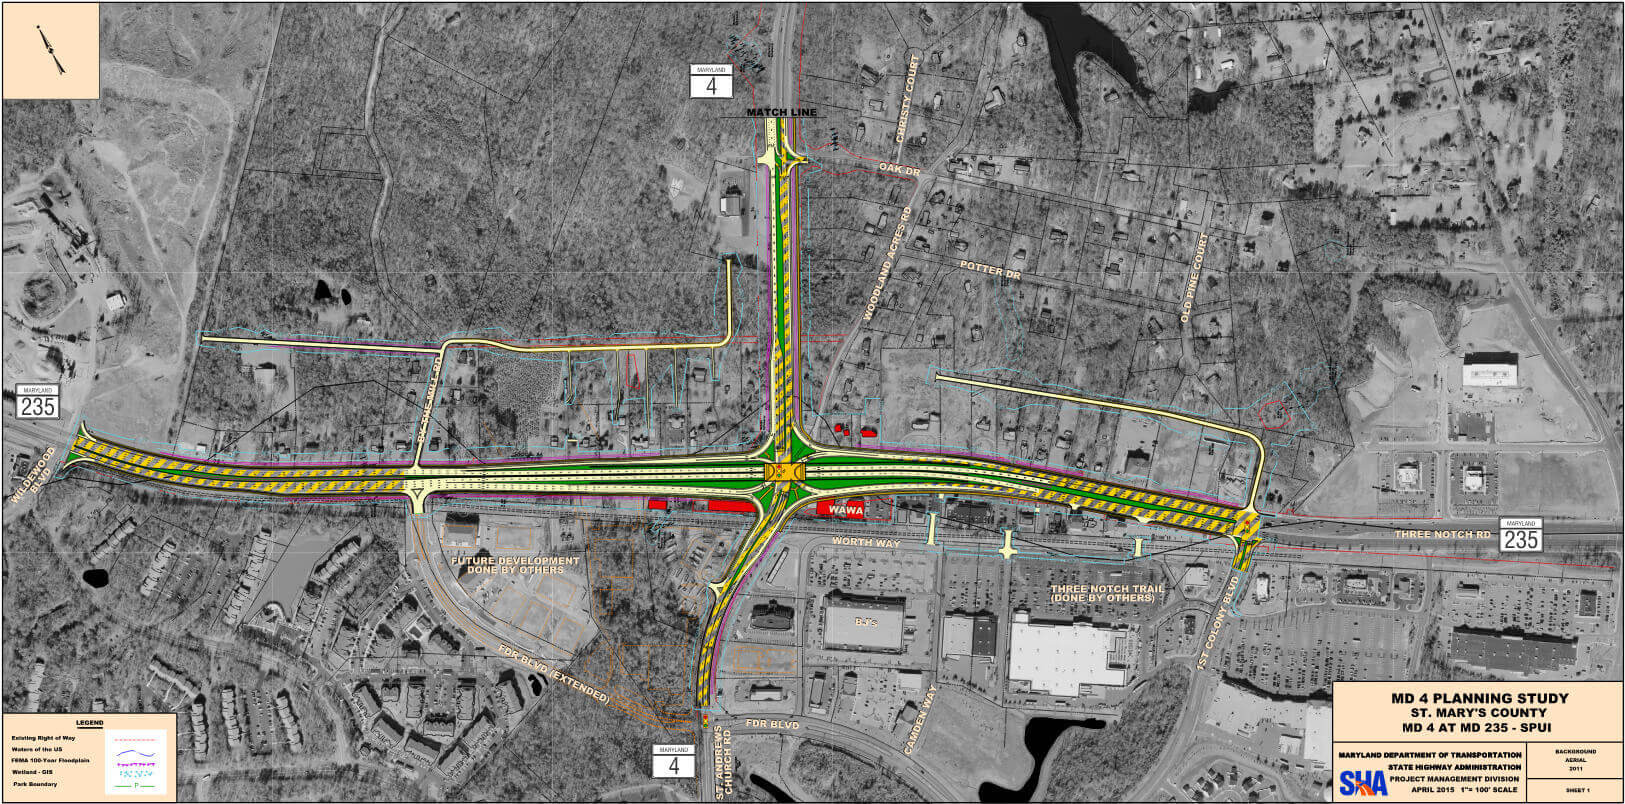 Patuxent-Beach-Rd-MD-4-Expanding-Intersection-with-Three-Notch-Rd-St-Marys-County